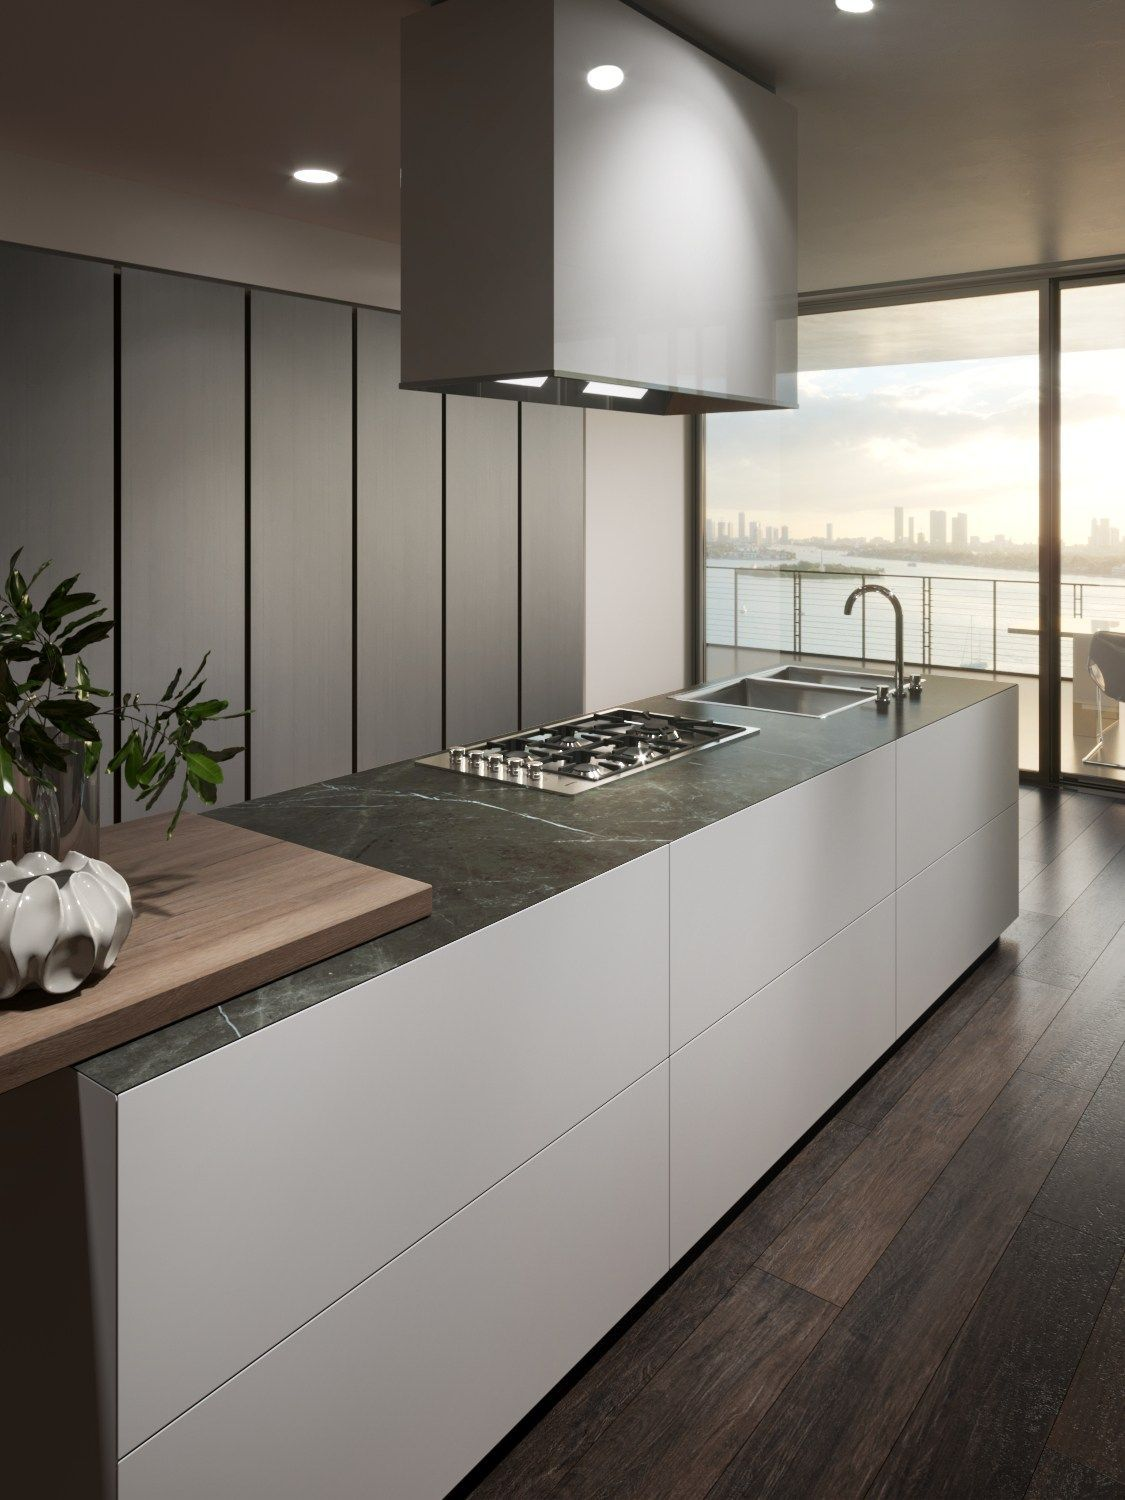 kitchen  Monolite By scic, fitted kitchen without handles, design